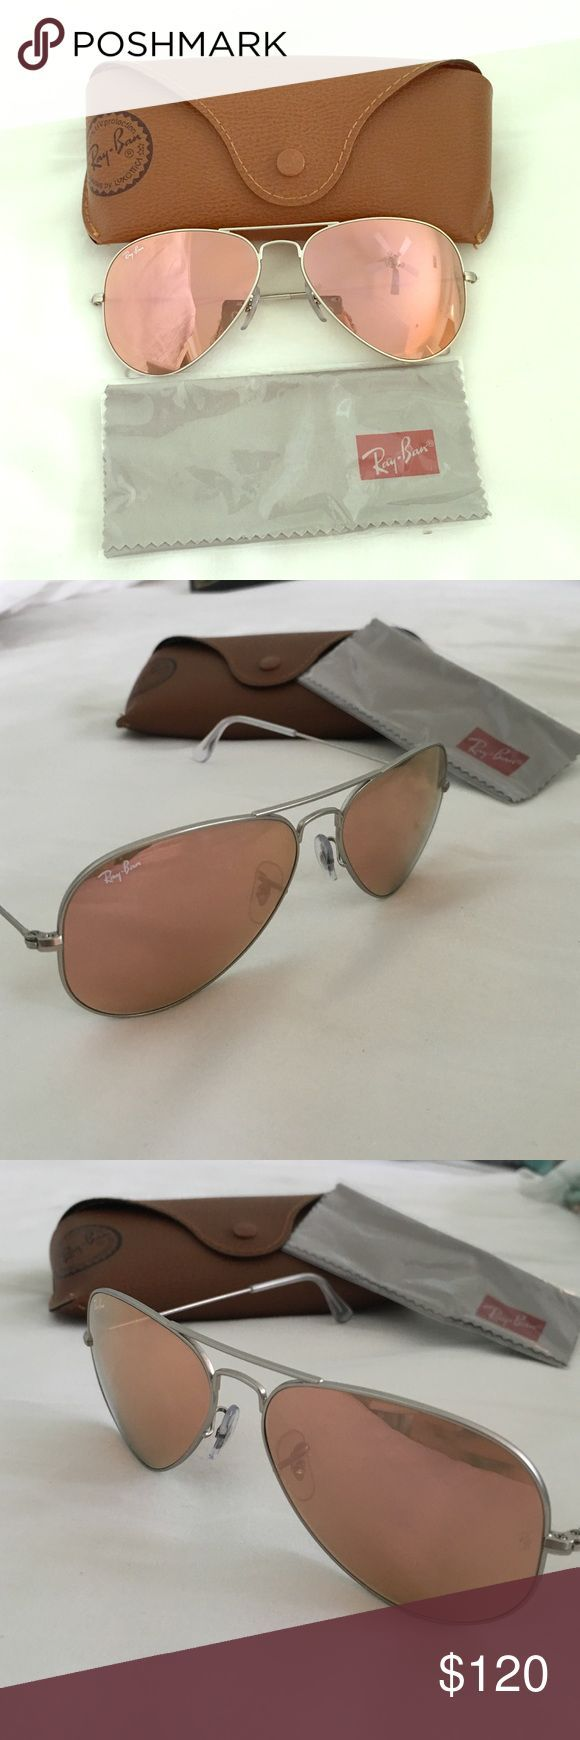 best price on ray ban aviator sunglasses  17 Best ideas about Cheap Ray Ban Aviators on Pinterest